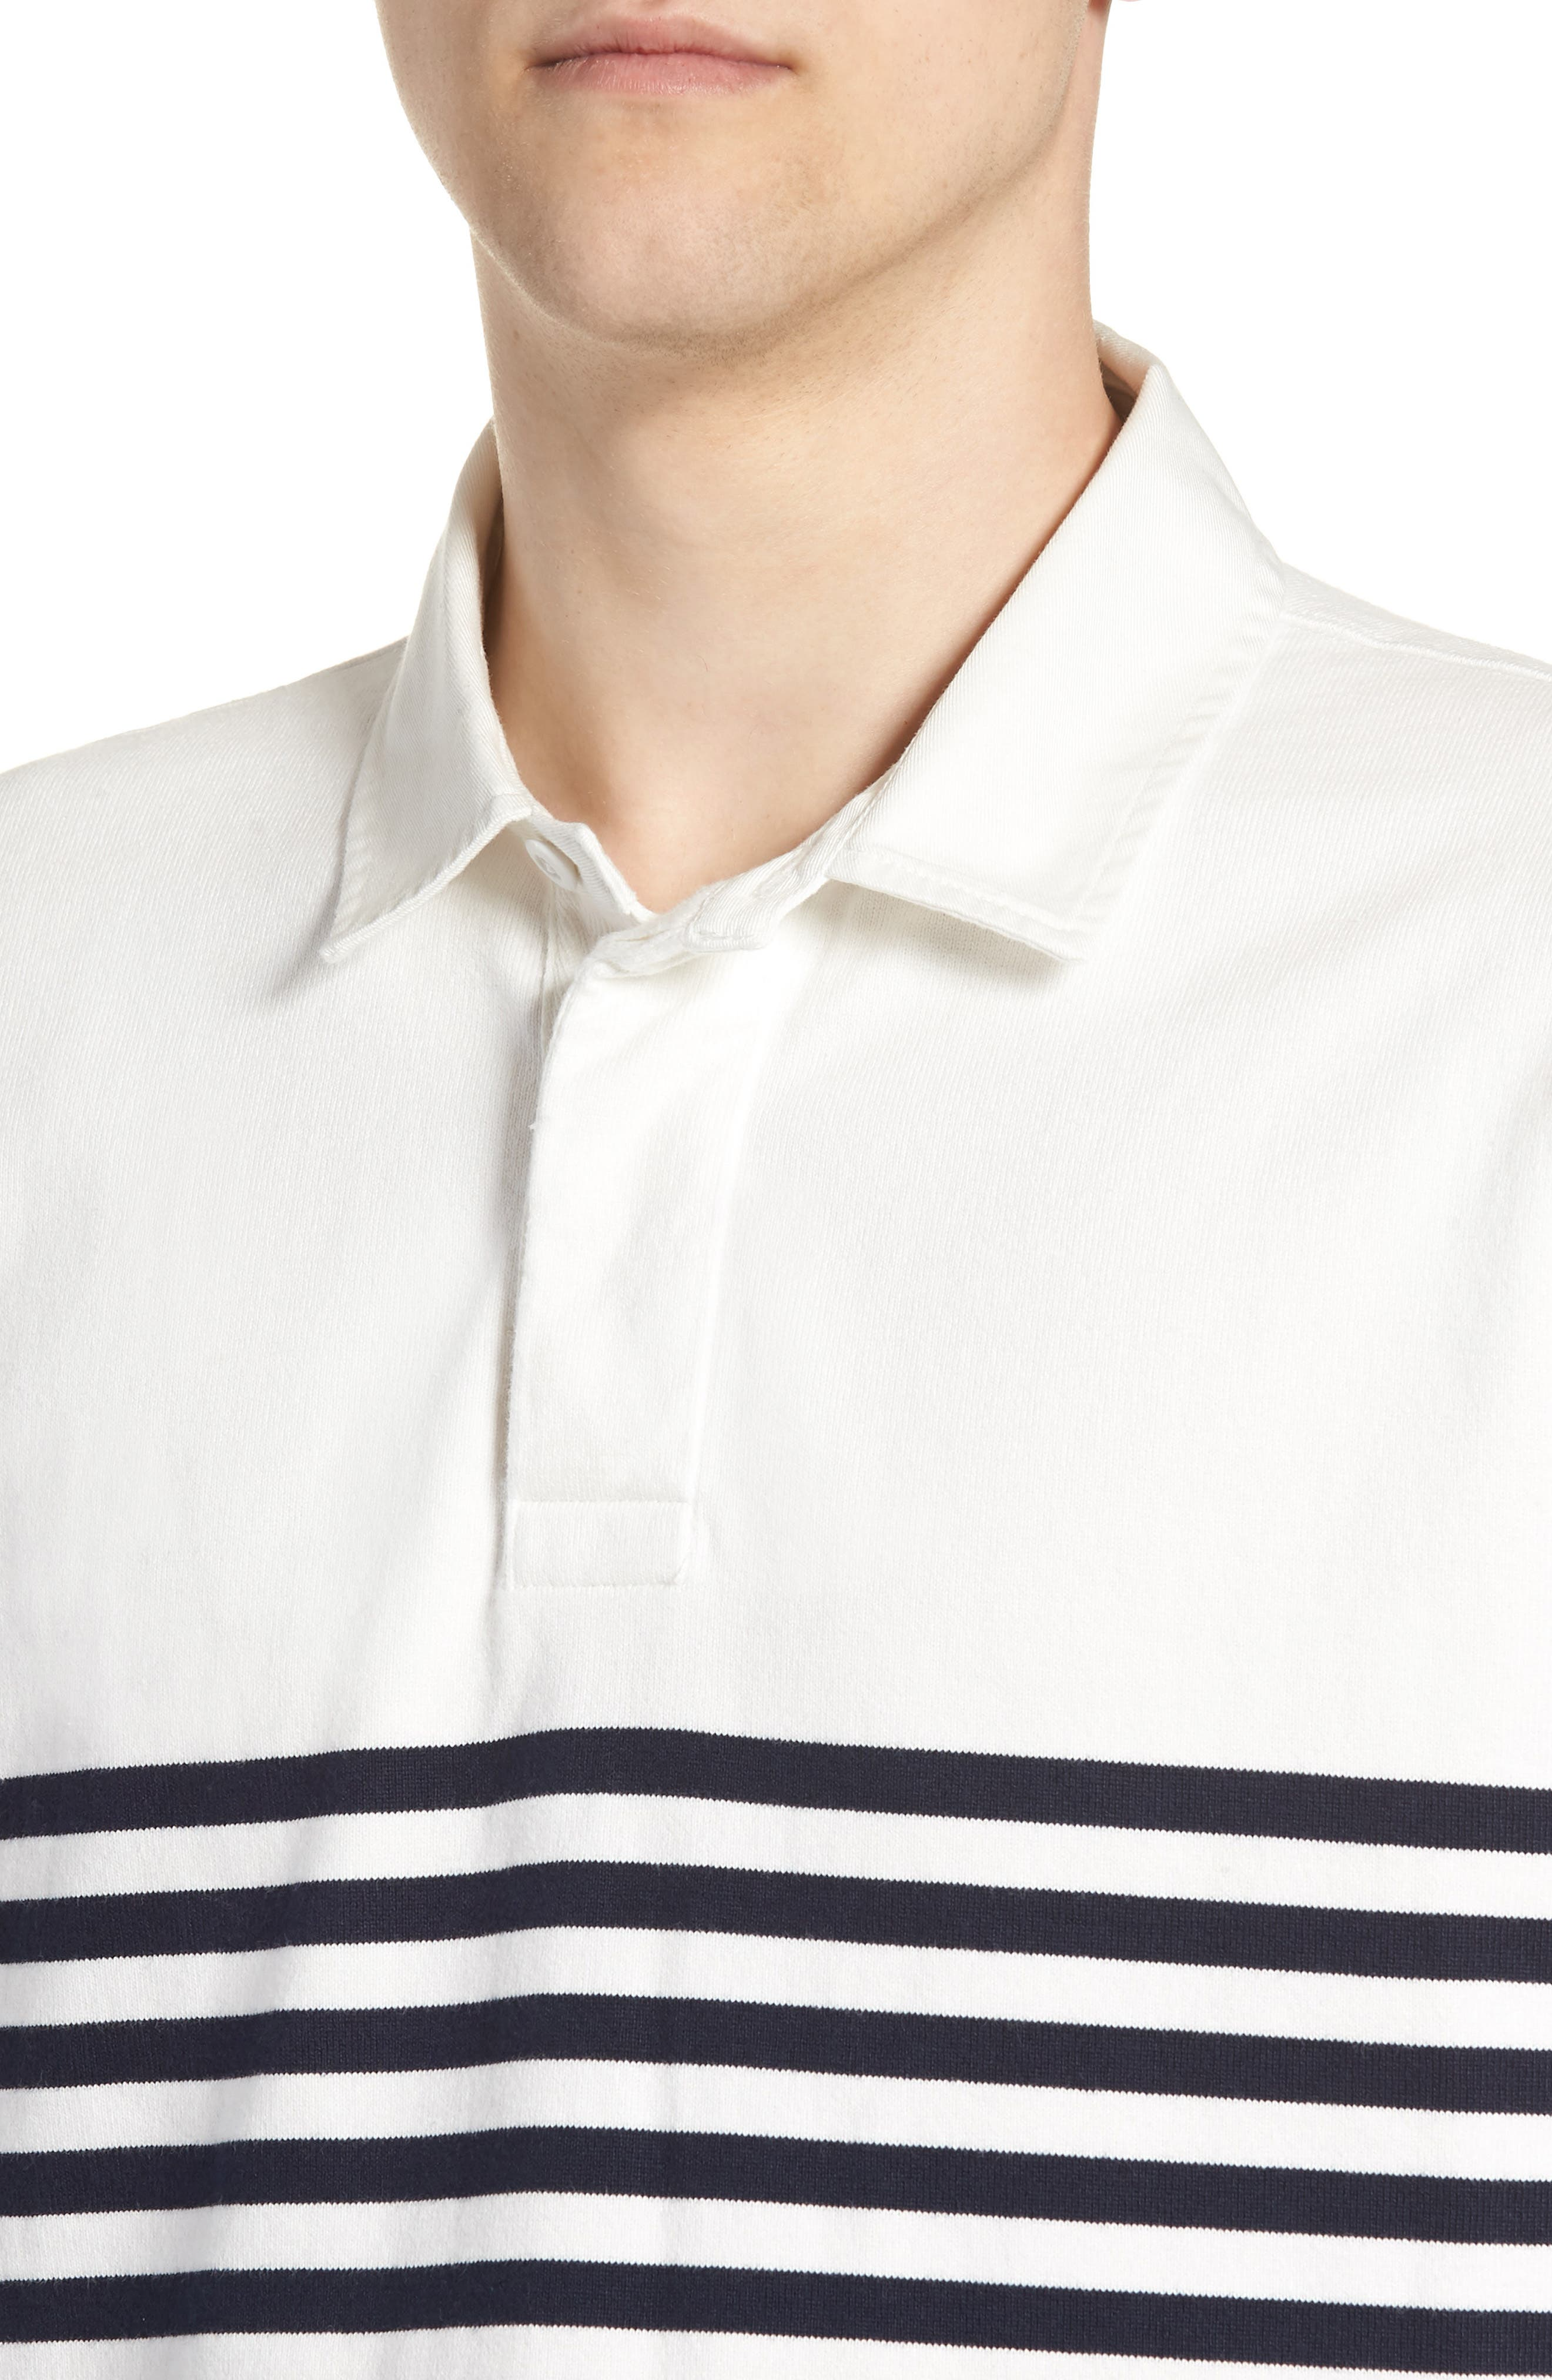 1984 Colorblock Stripe Rugby Shirt,                             Alternate thumbnail 4, color,                             Navy White